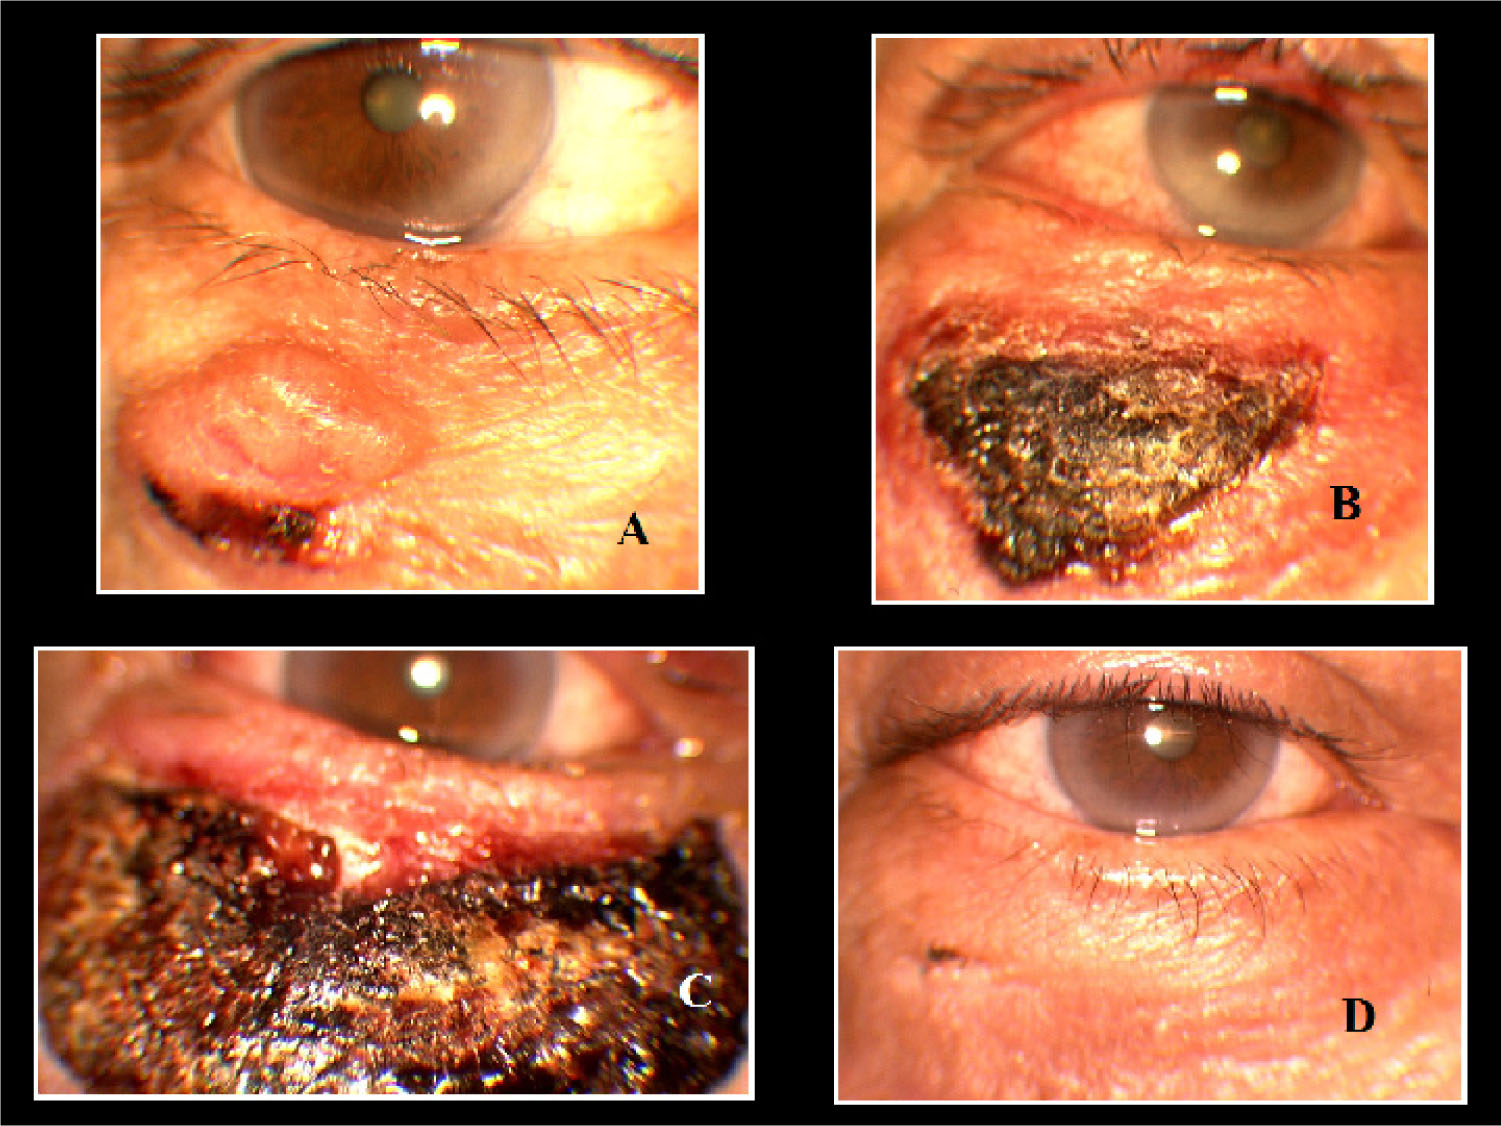 (A) Nodular BCC with Crusting Below the Inferior Right Eyelid. (B) Wide Crust Similar to a Third-Degree Burn During the Third Week of Treatment. (C) During the Fourth Week, the Crust Extended Through Most of the Lower Eyelid's Skin Thickness, Similar to a Severe Burn or Necrosis. (D) Excellent Clinical and Cosmetic Outcomes After Two Months of the Treatment.